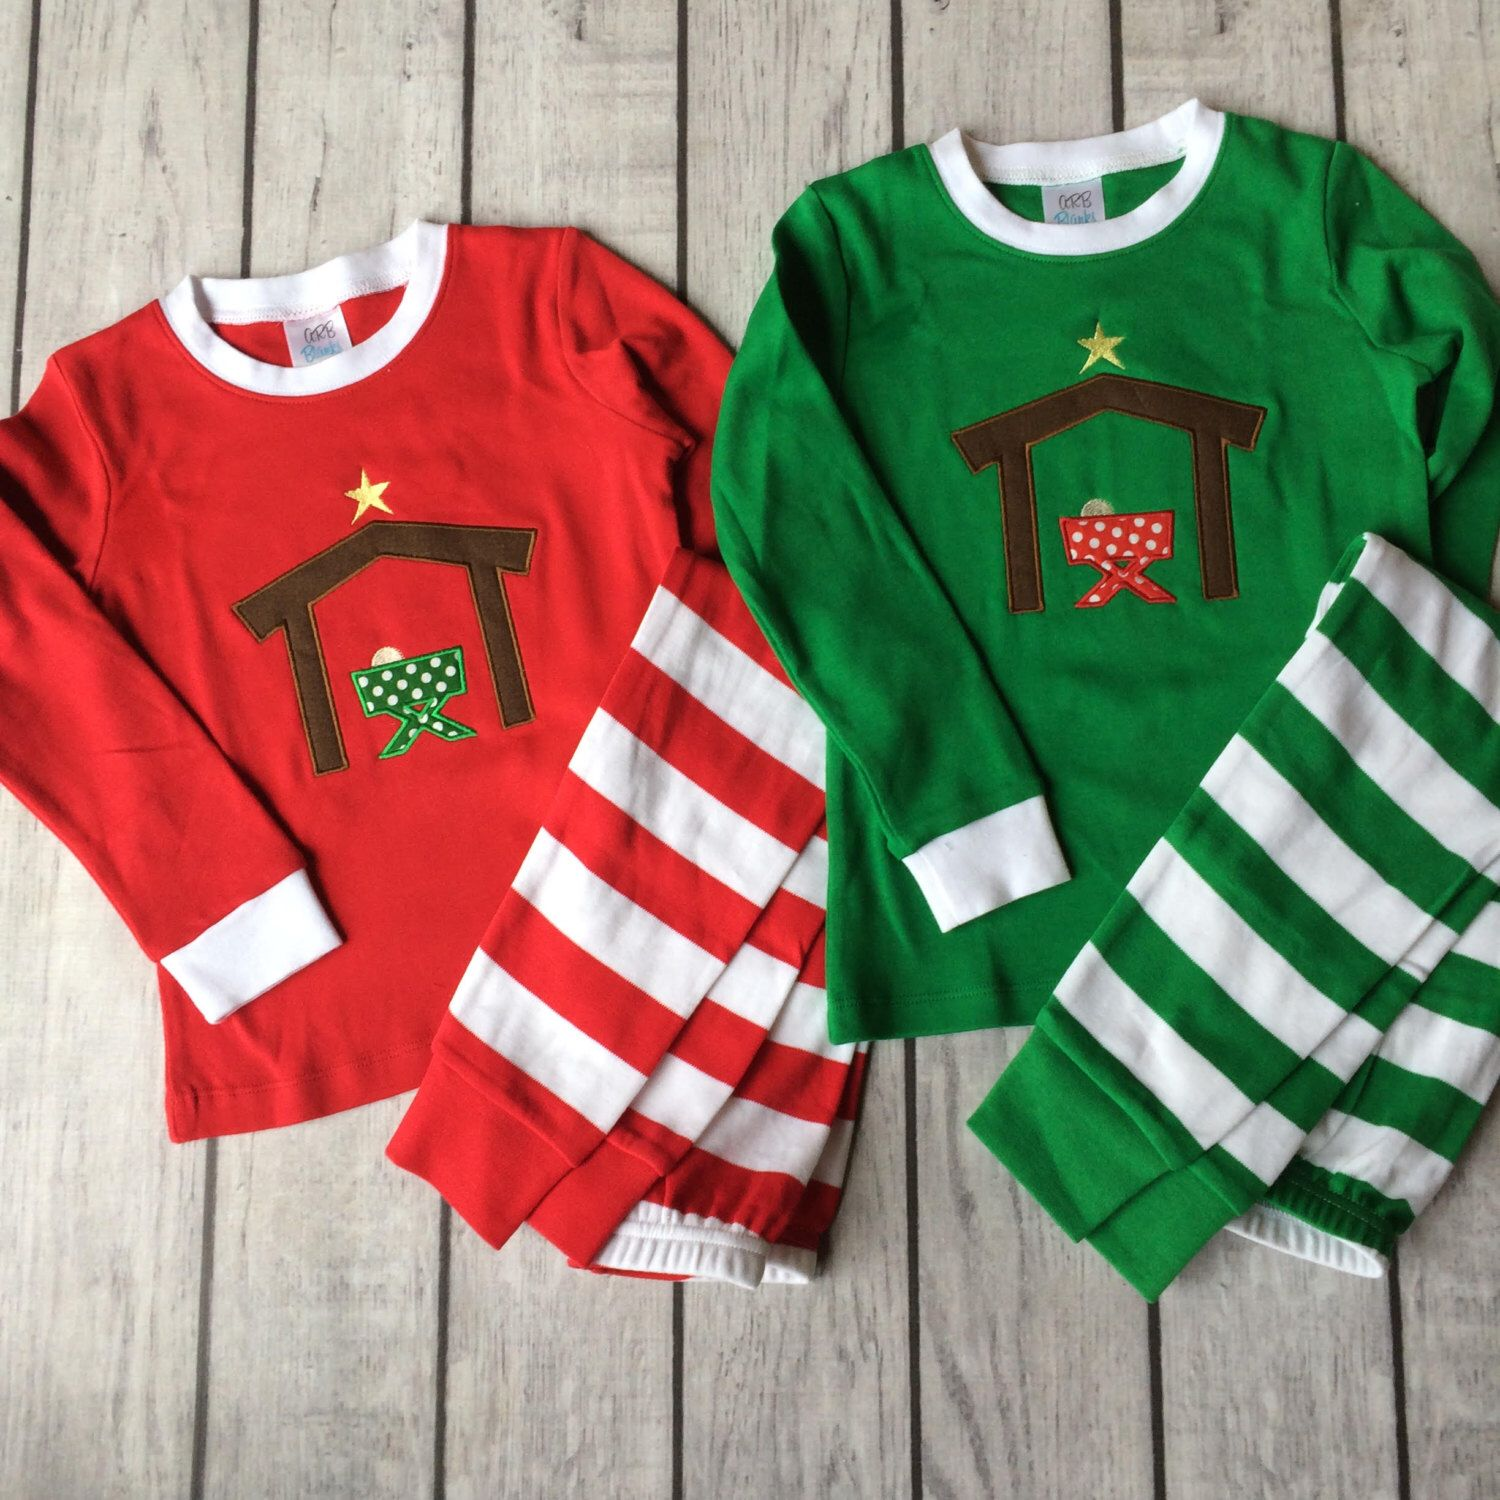 Monogrammed Xmas Pjs Baby, Toddler, Kid Christmas Photos Childrens Personalized